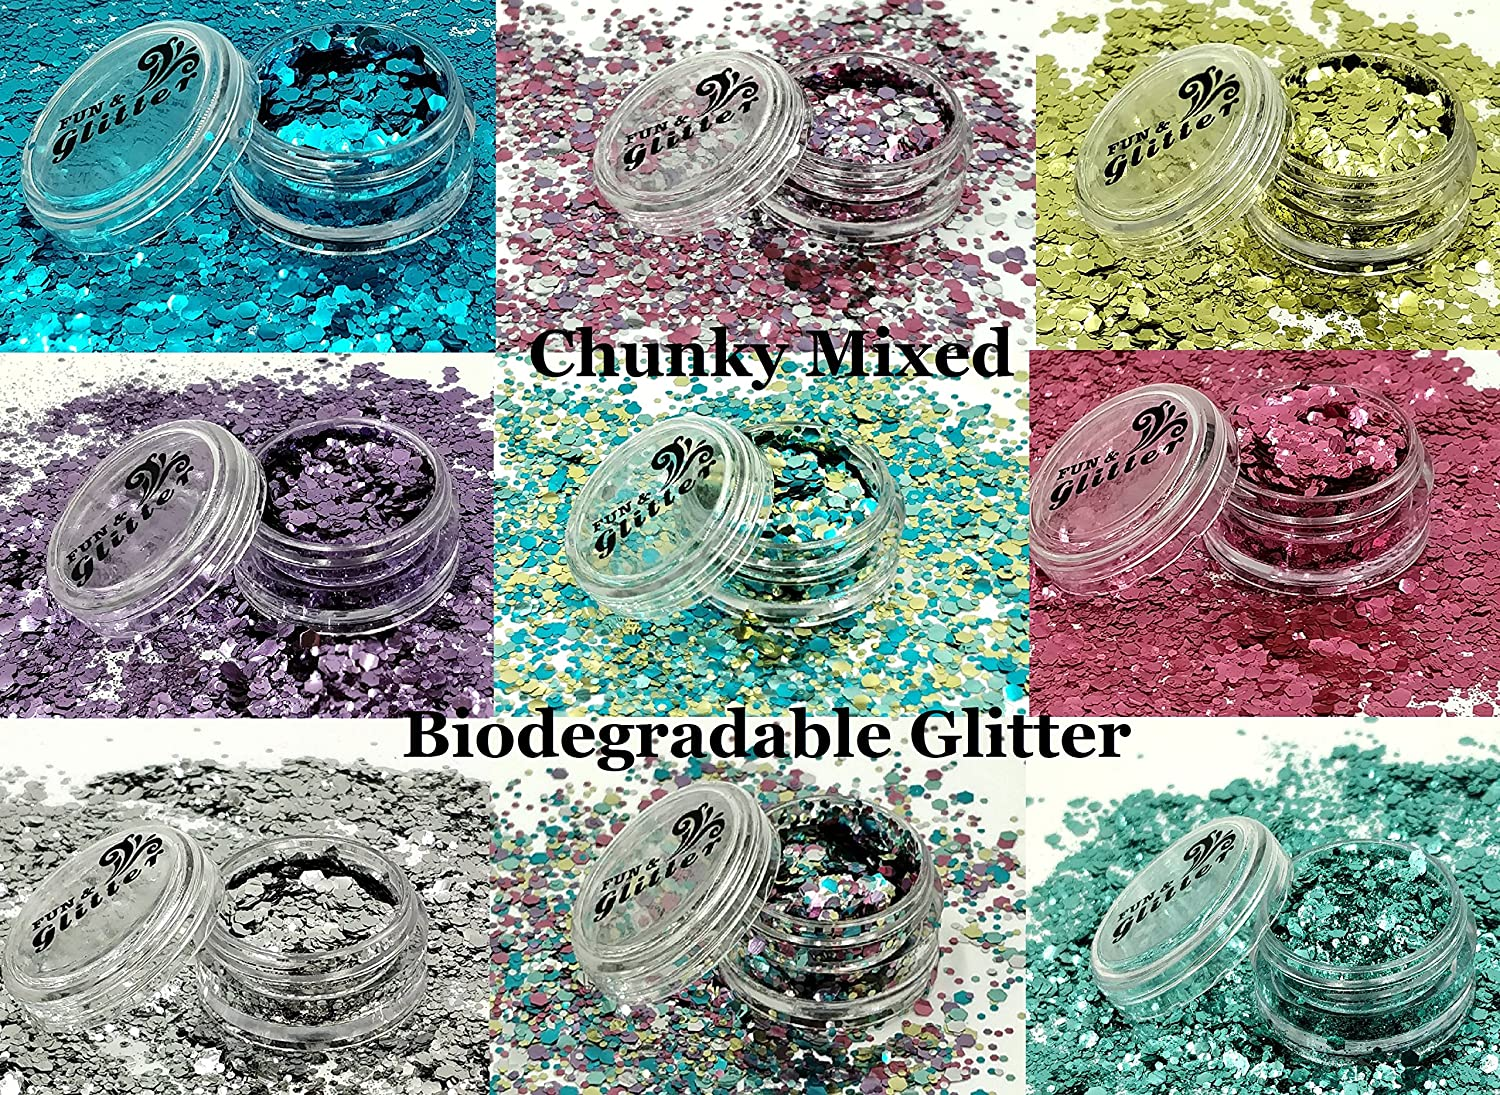 Biodegradable GLITTER Festival Mix (10ml Pot) – Loose Glitter for Festival Faces, Party Faces, Sparkling Glitter Hair, Nails and Body Make Up (Mermaid Vibes BG07) Fun And Glitter Ltd